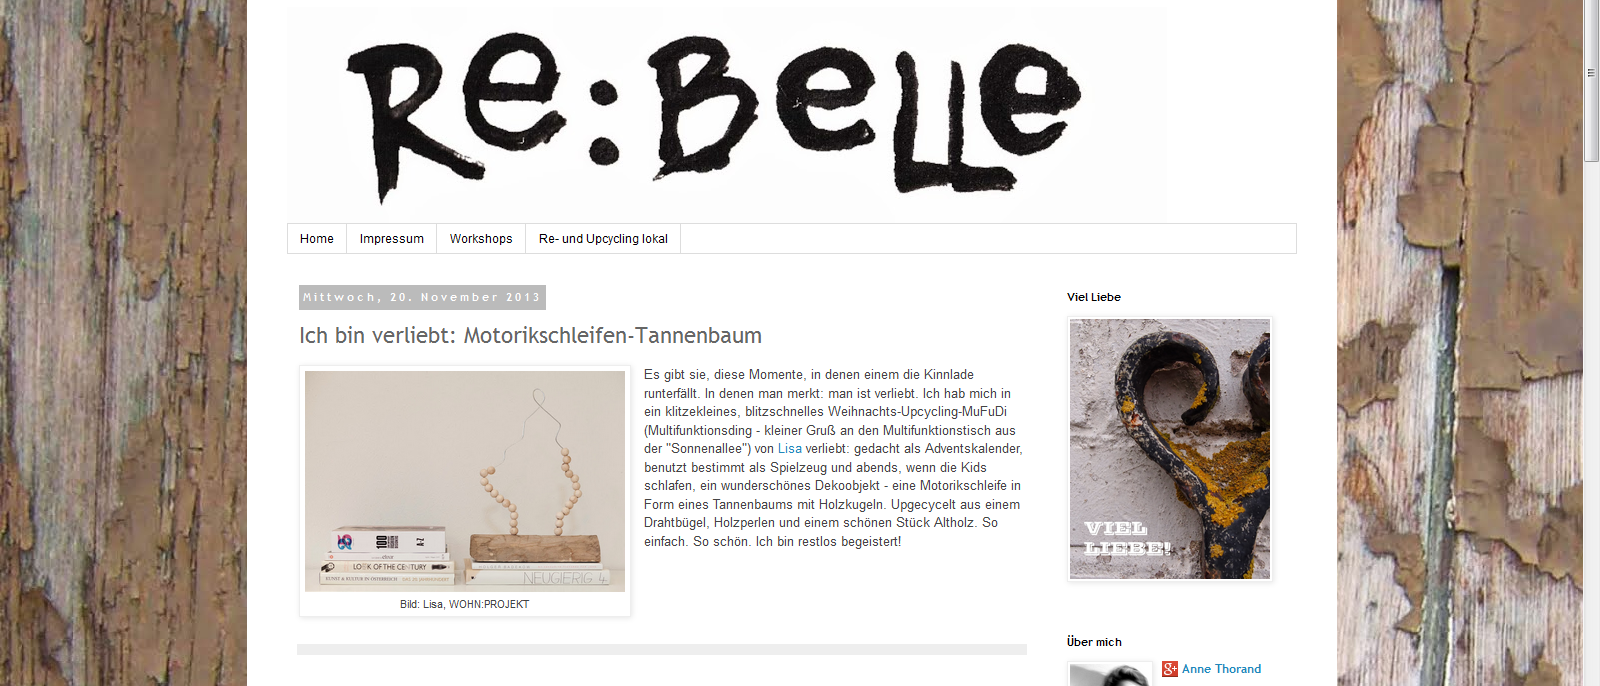 http://rebelle-upcycling.blogspot.co.at/2013/11/ich-bin-verliebt-motorikschleifen.html